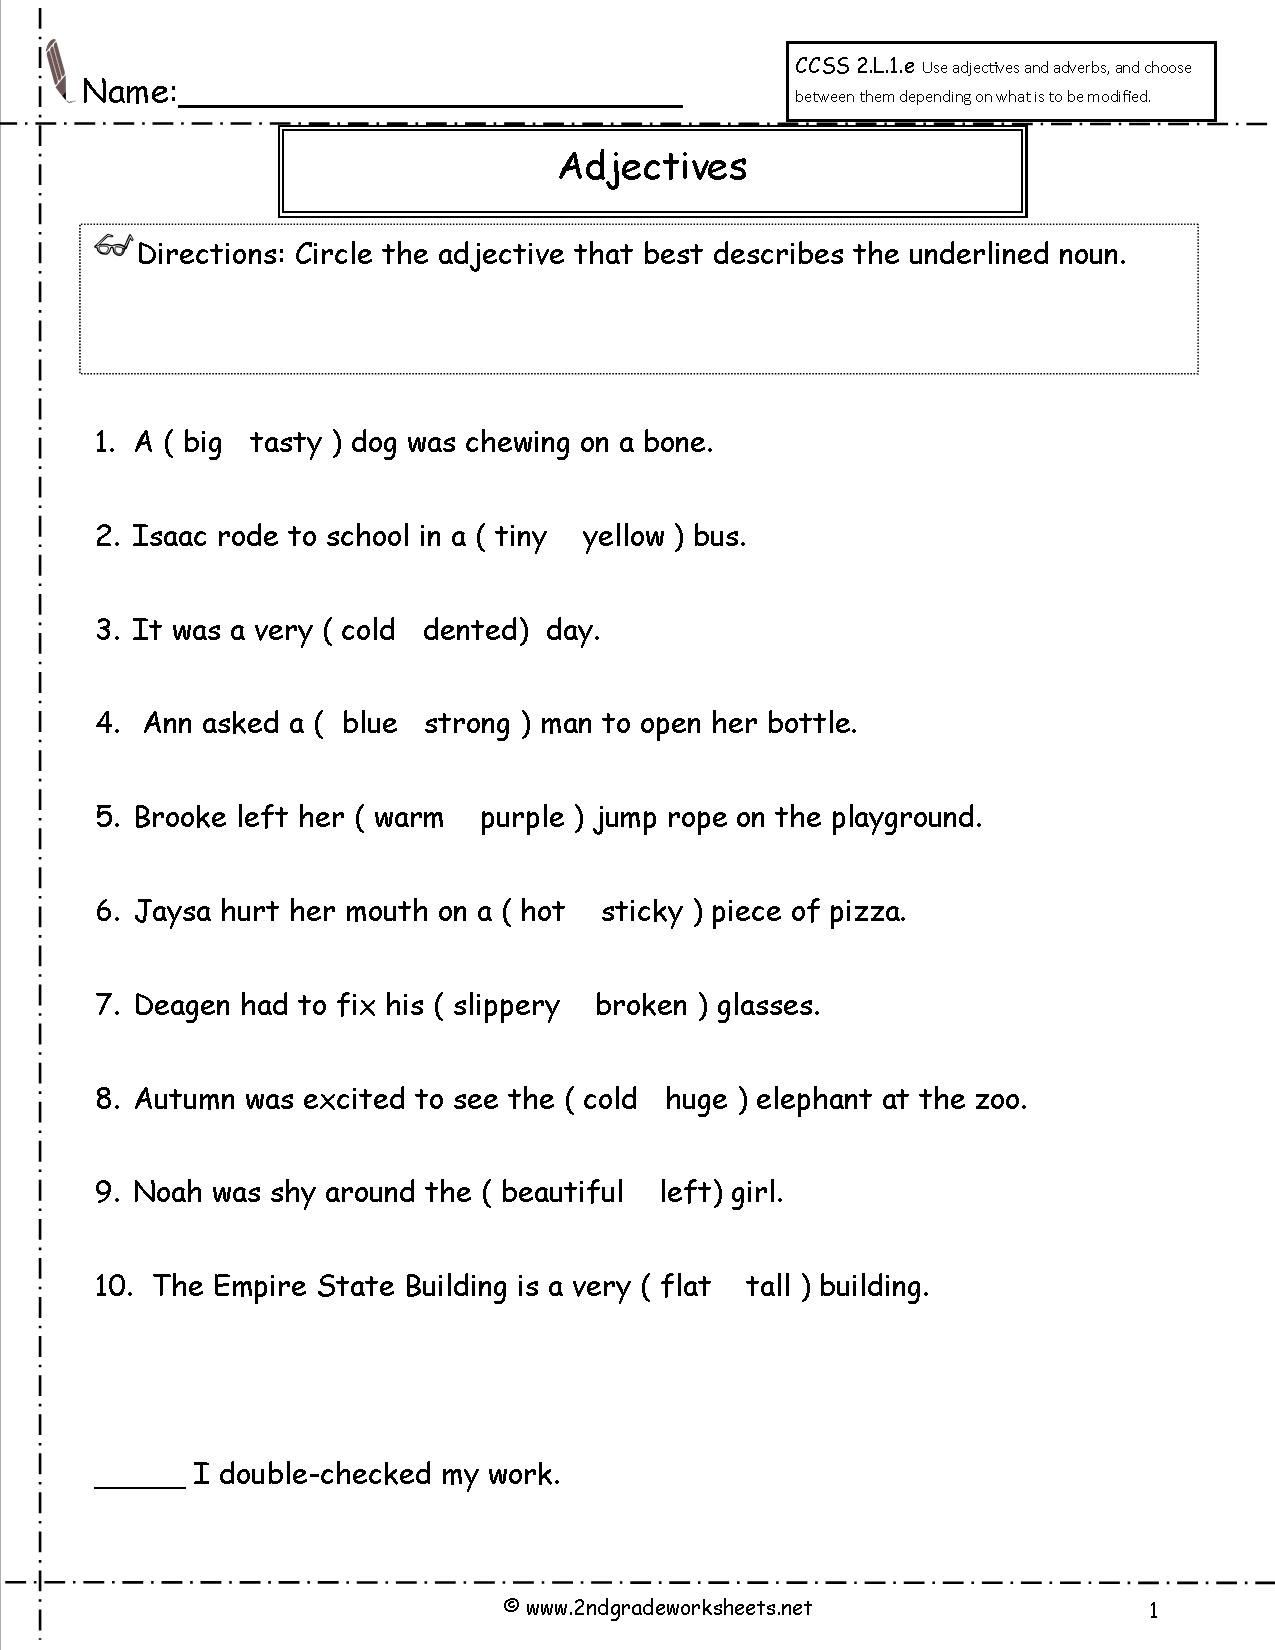 Decomposing Fractions Worksheets 4th Grade Adjective Worksheets 4th Grade